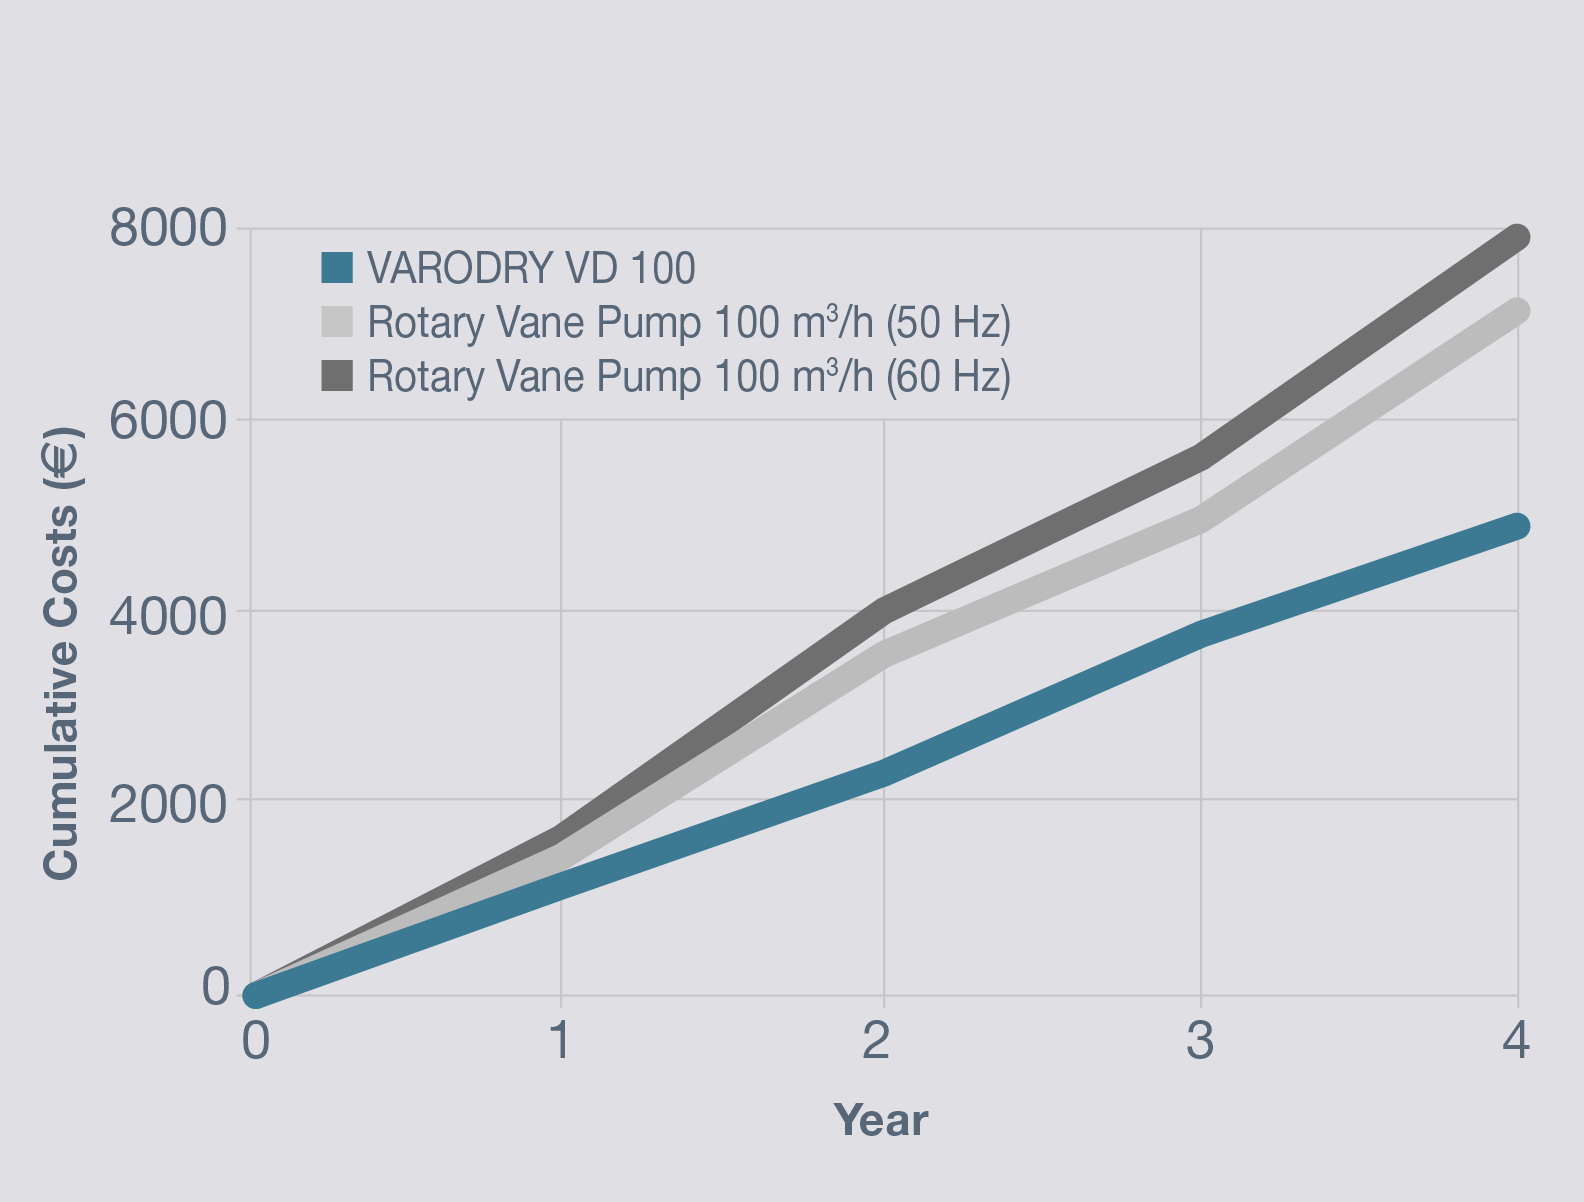 Varodry Vakuumpumpe Leybold Vane Pump Diagram Compared With An Oil Sealed Rotary